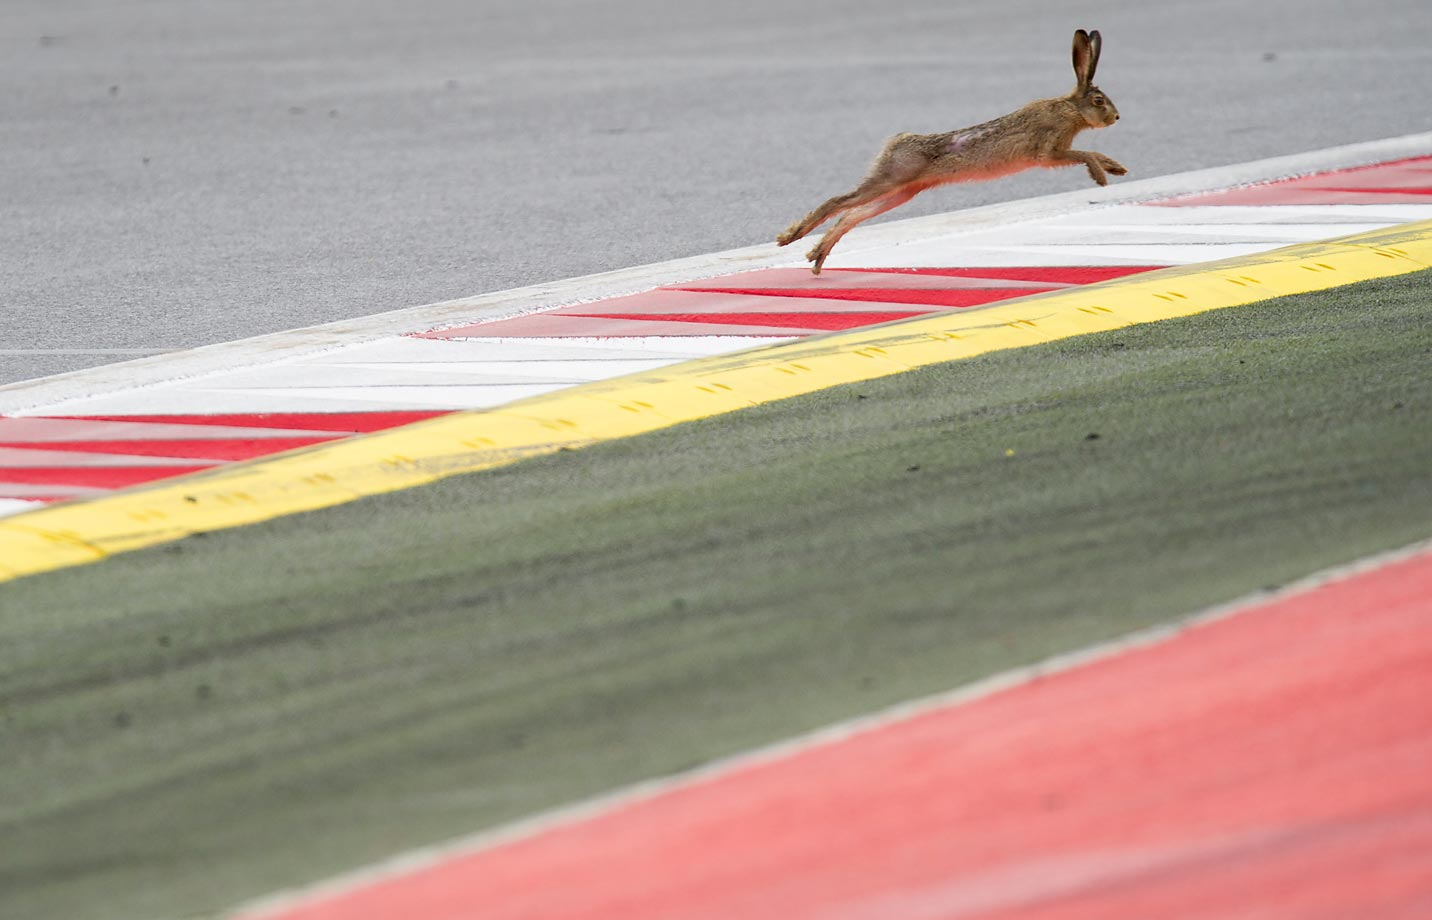 A hare jumps across the track at the Red Bull Ring ahead of the Austrian Formula One Grand Prix.